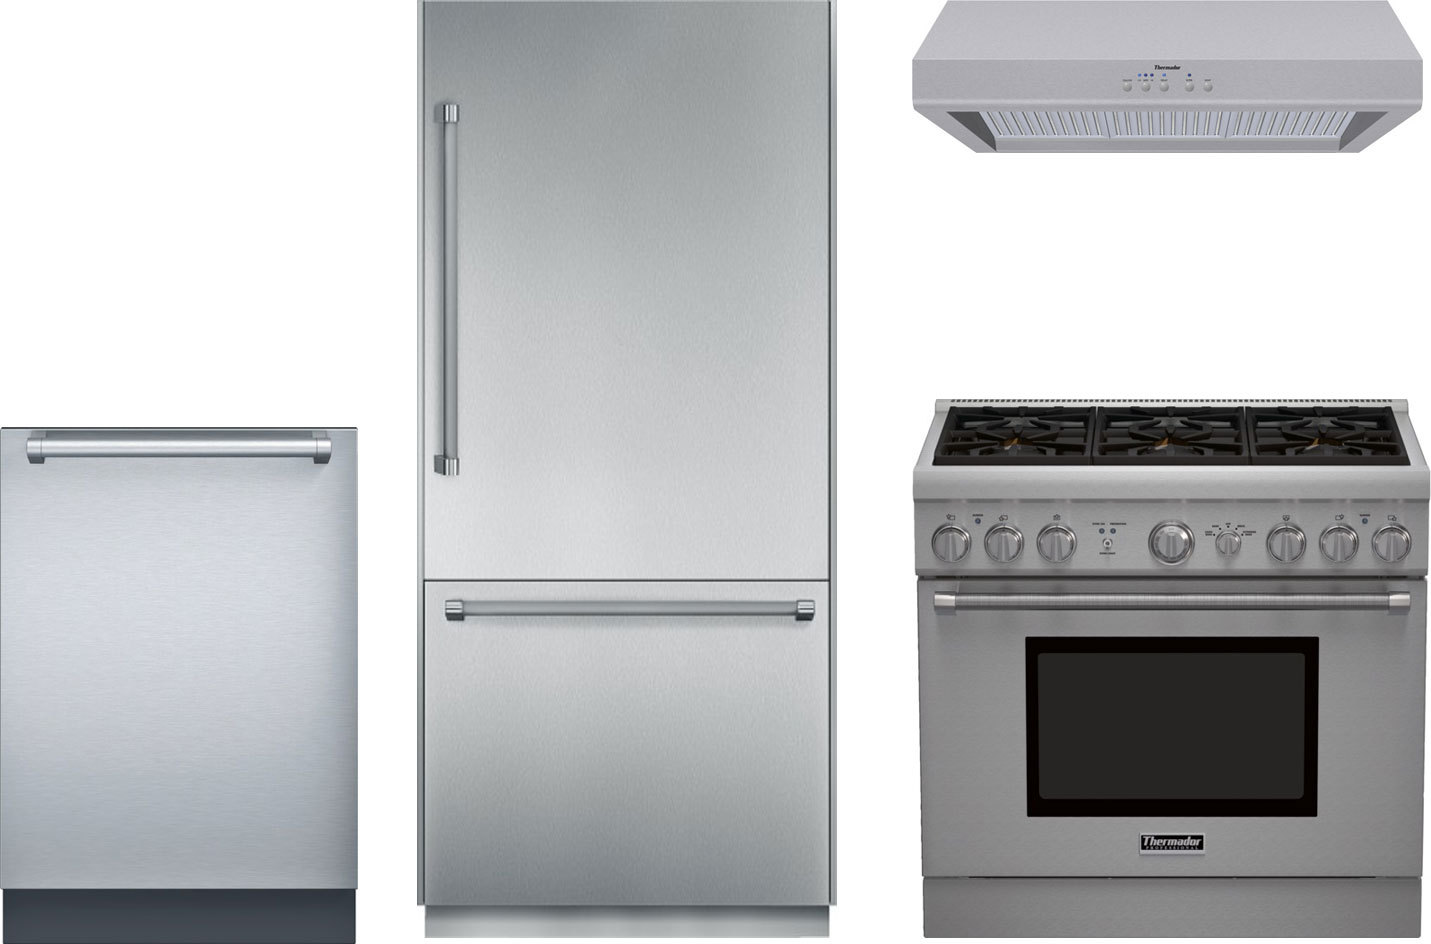 awesome Thermador Kitchen Appliance Packages #9: Thermador Kitchen Package with PRG366GH Gas Range, T36BB820SS Refrigerator,  DWHD440MFP Dishwasher u0026 HPWB36FS Range Hood